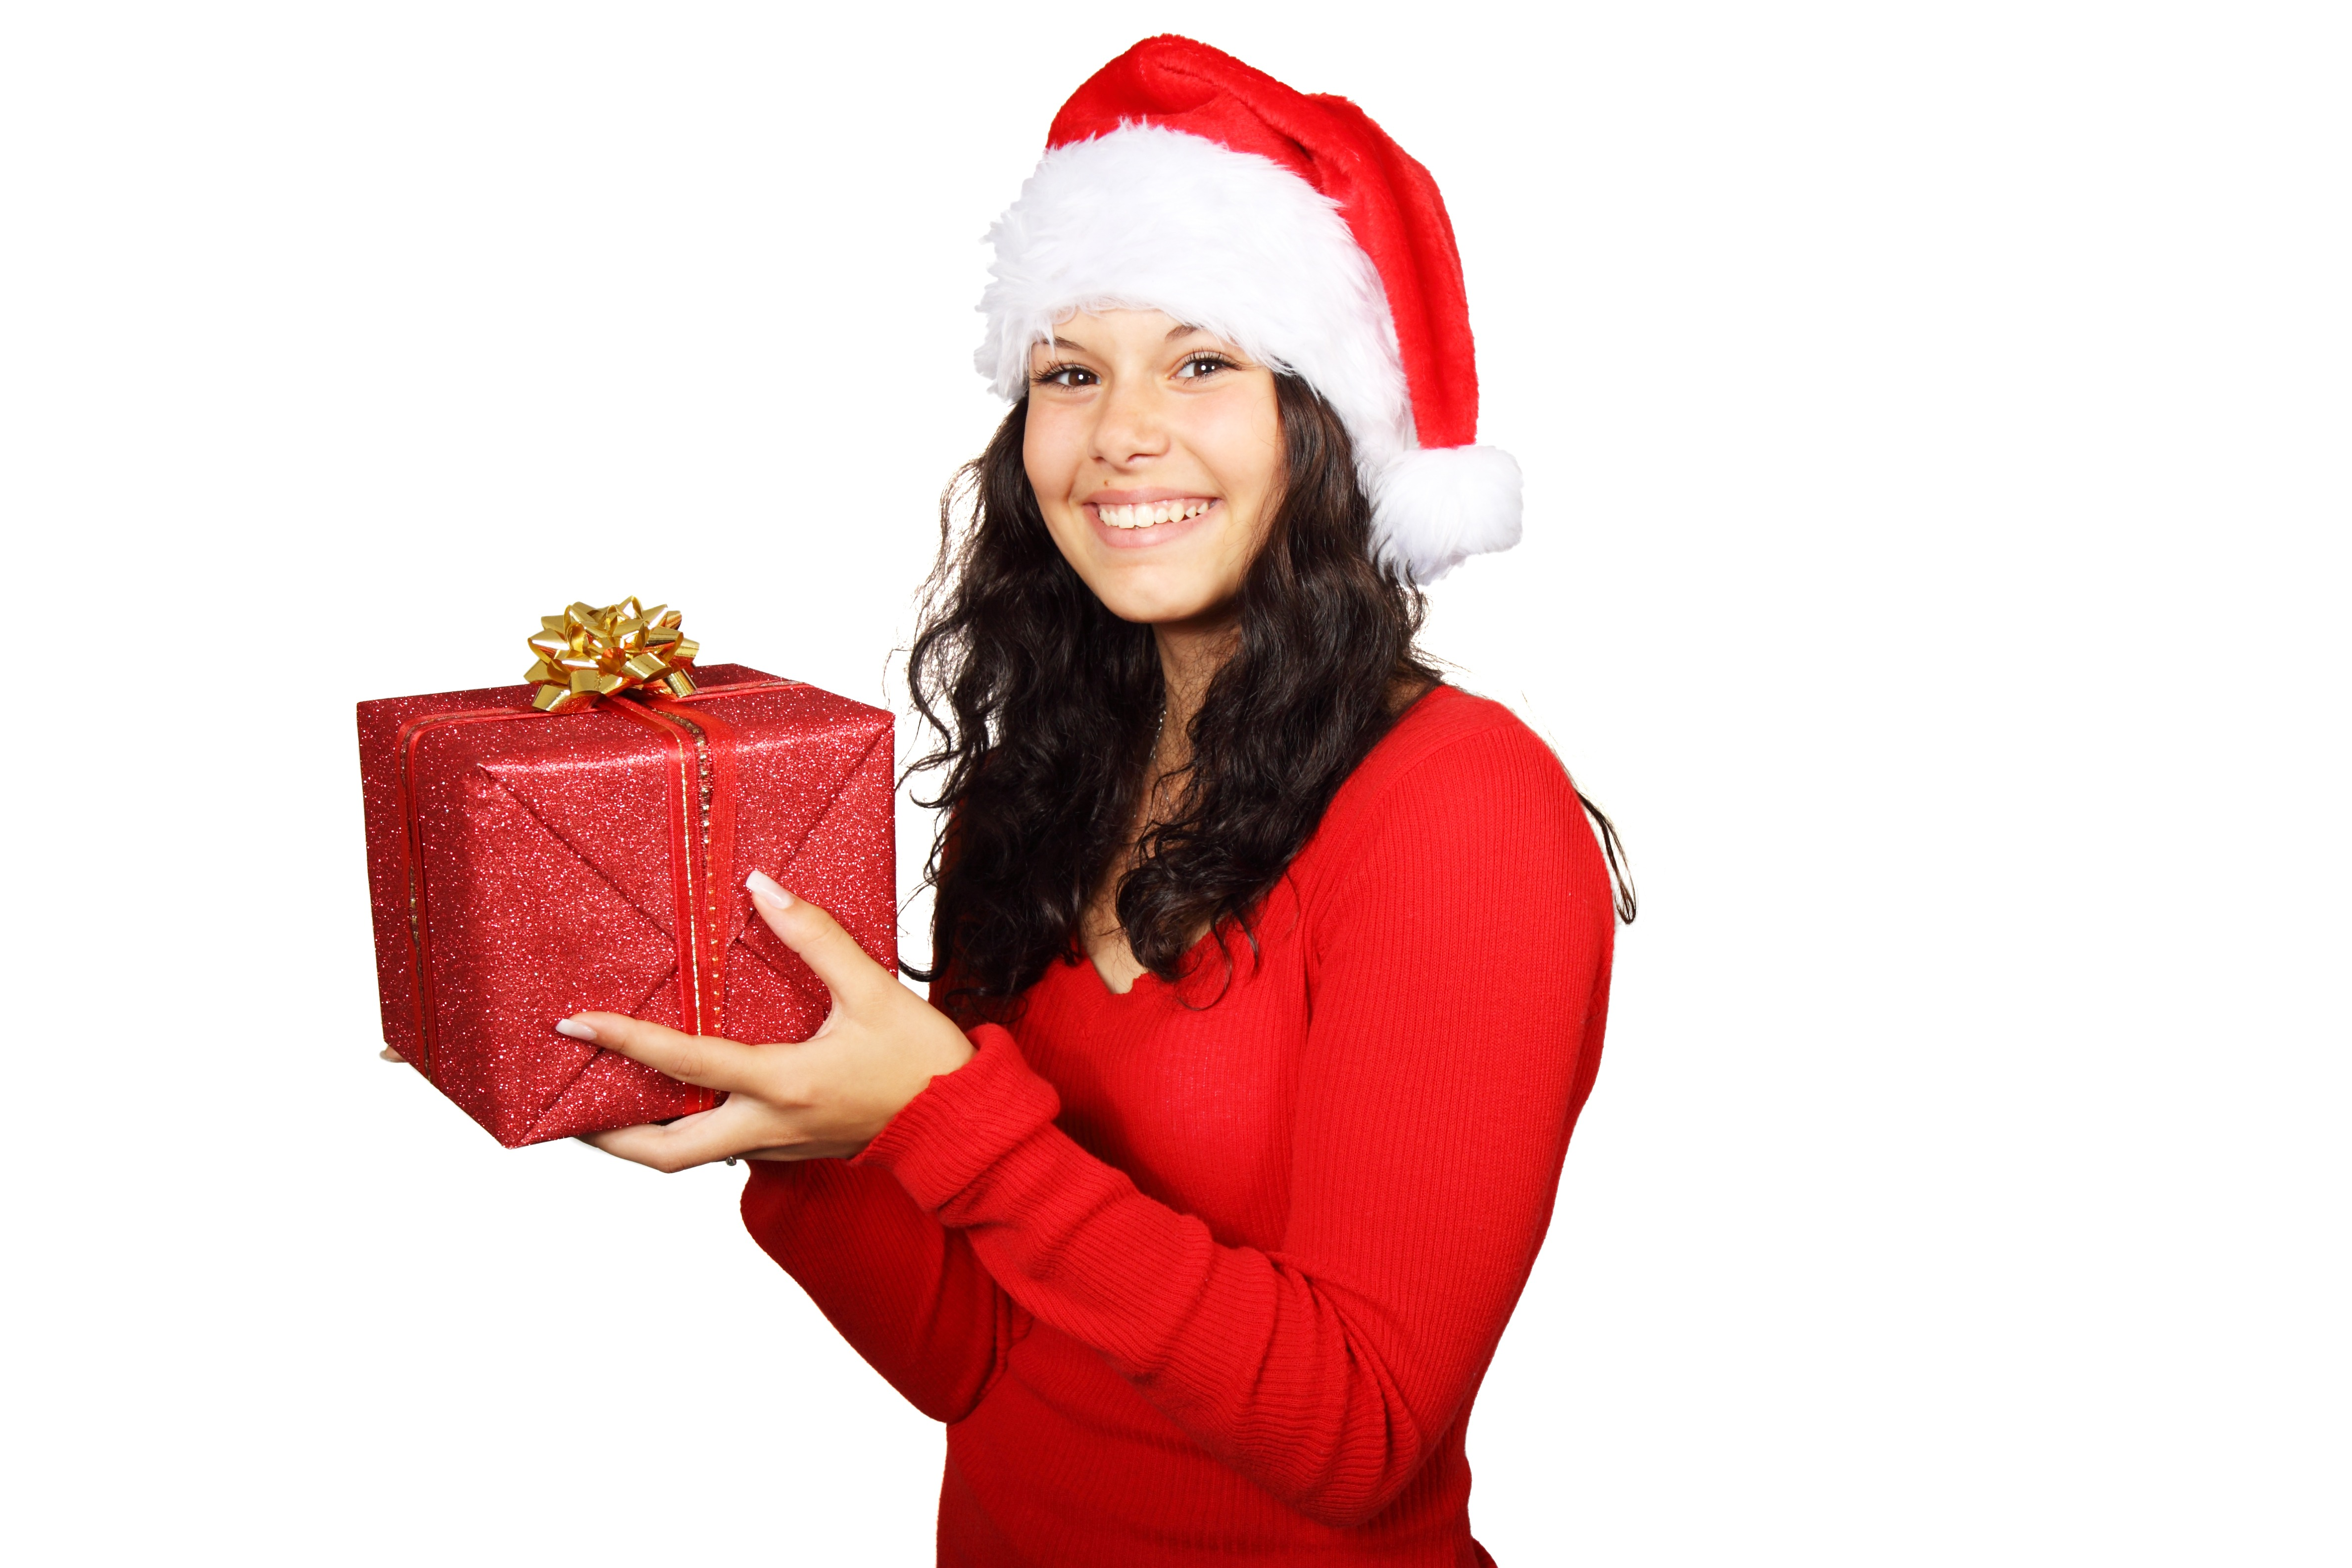 Girl with a Box, Activity, Celebrate, Celebration, Christmas, HQ Photo